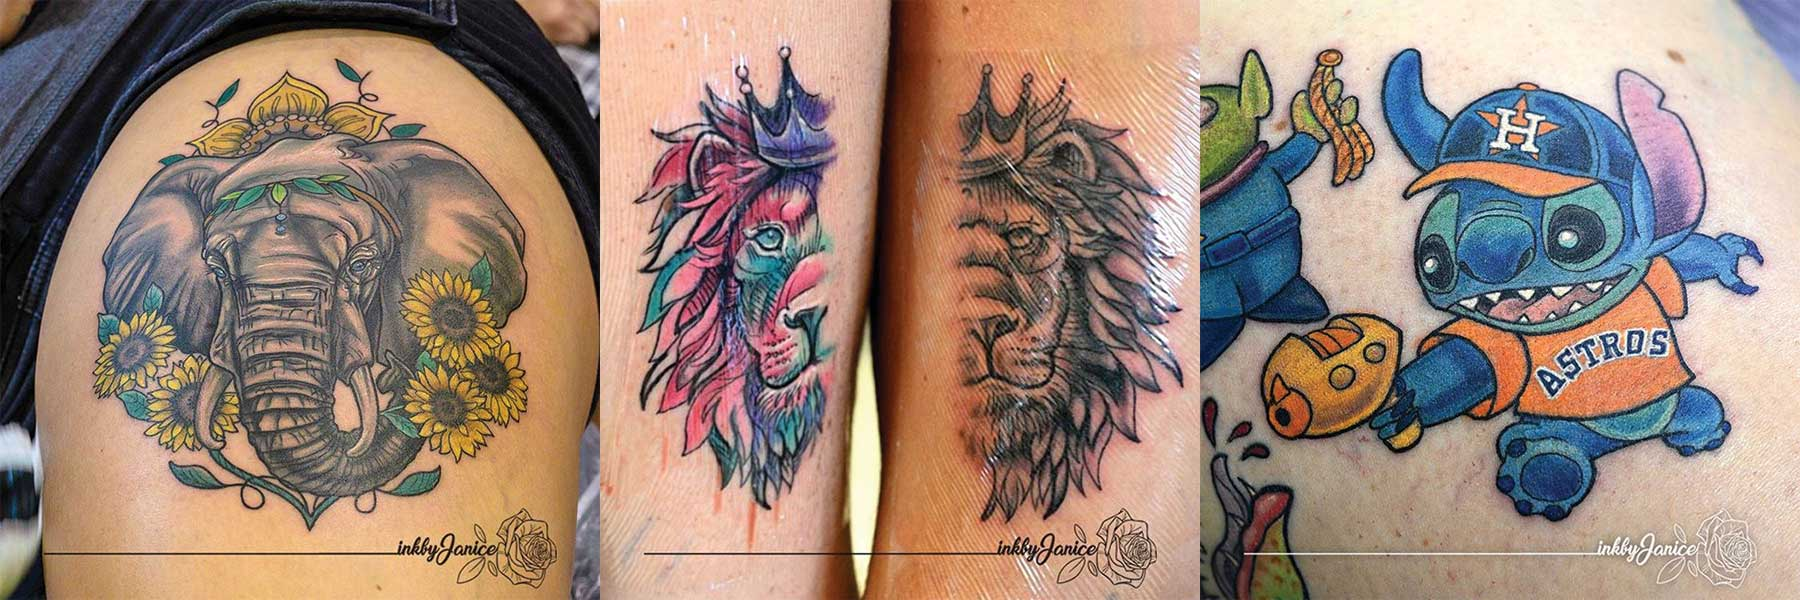 Getting a Tattoo in the Summer vs Winter